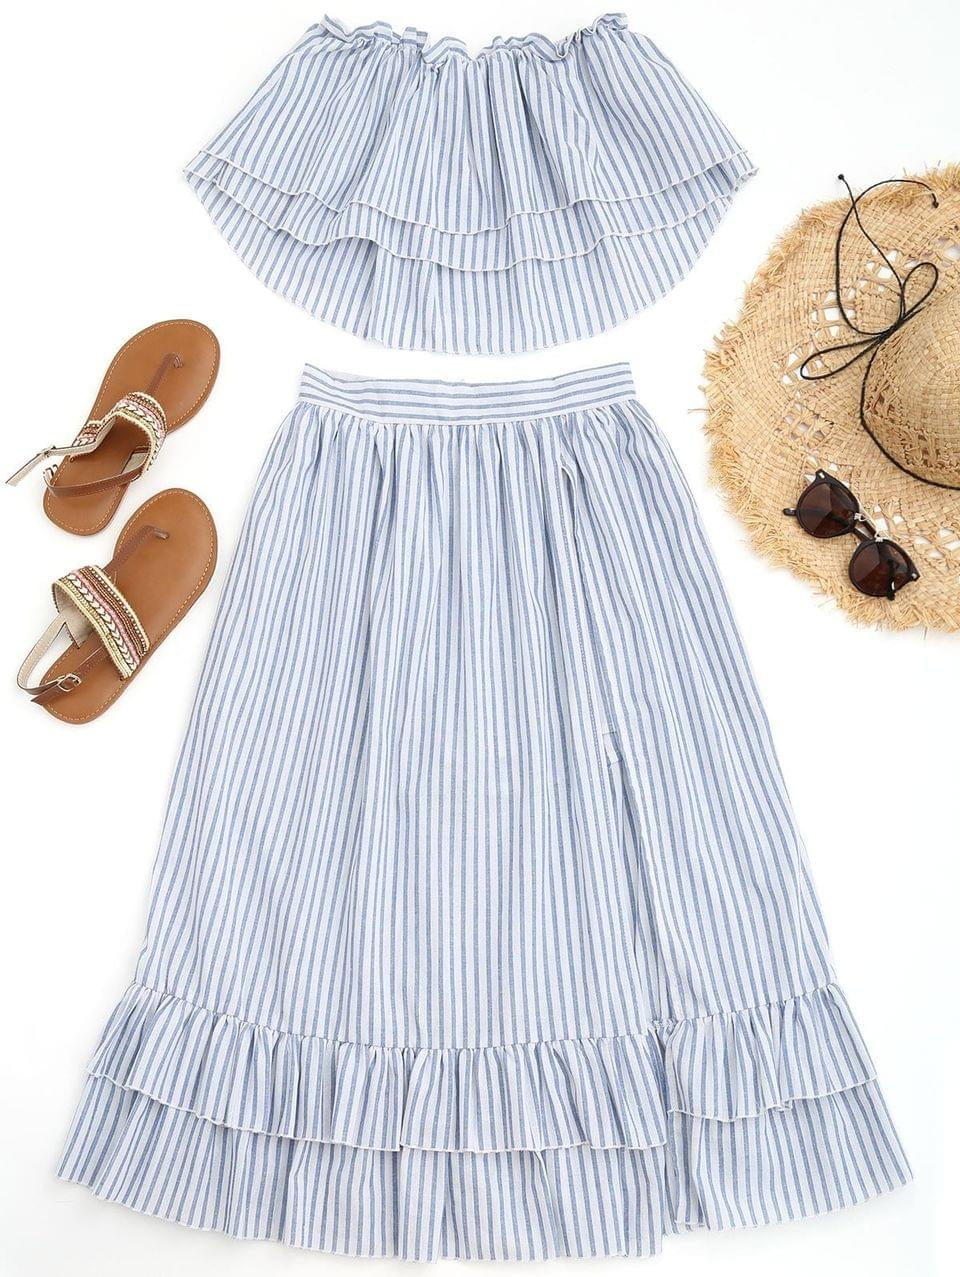 Women's Off Shoulder Striped Top With Overlay Maxi Shorts - Blue And White S